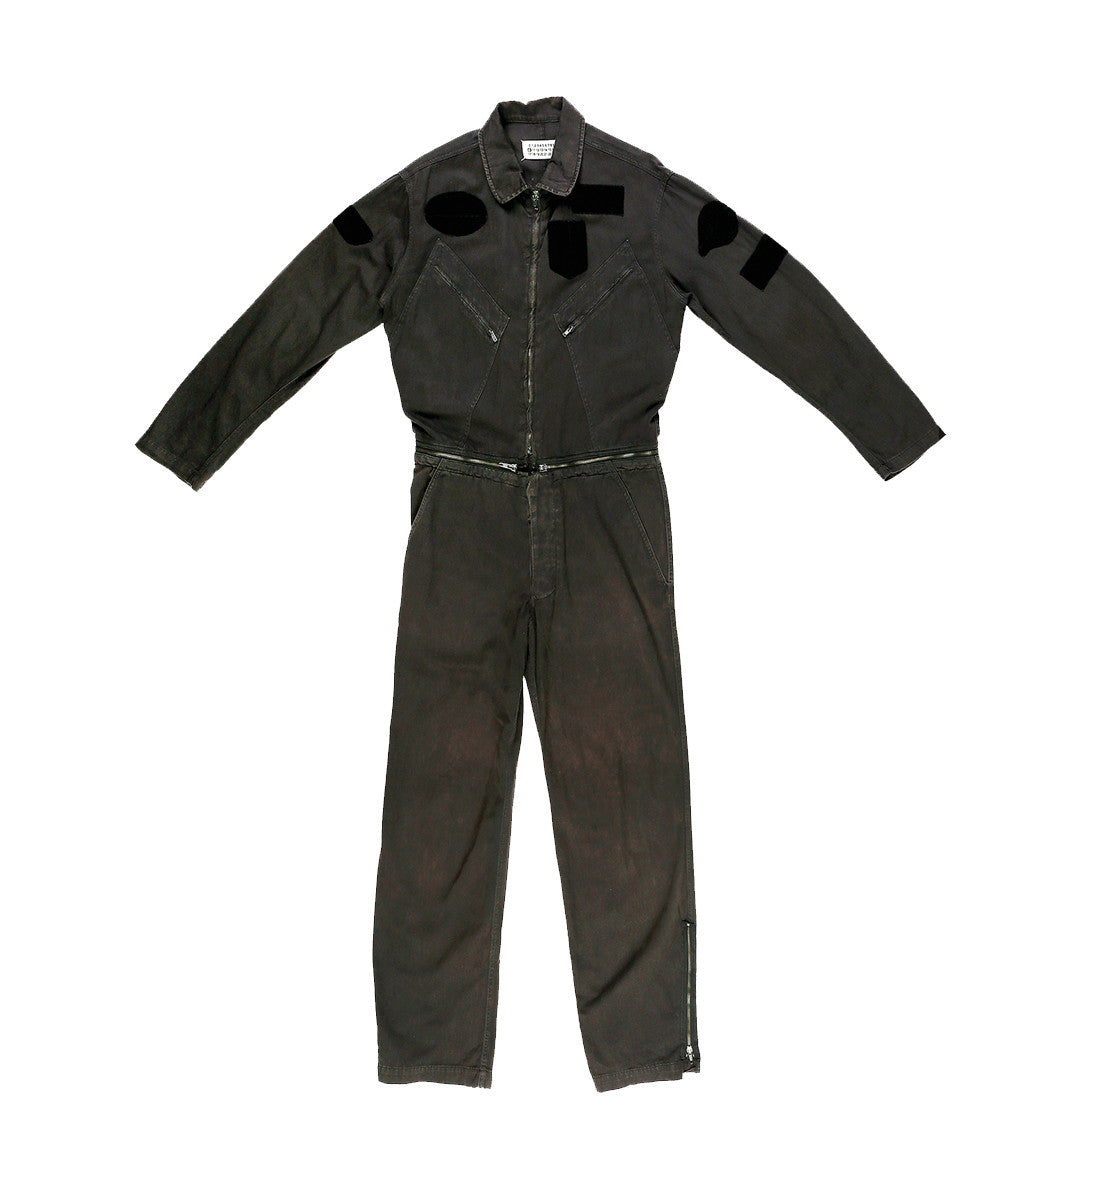 S/S02 Black Aviator Jumpsuit by Martin Margiela